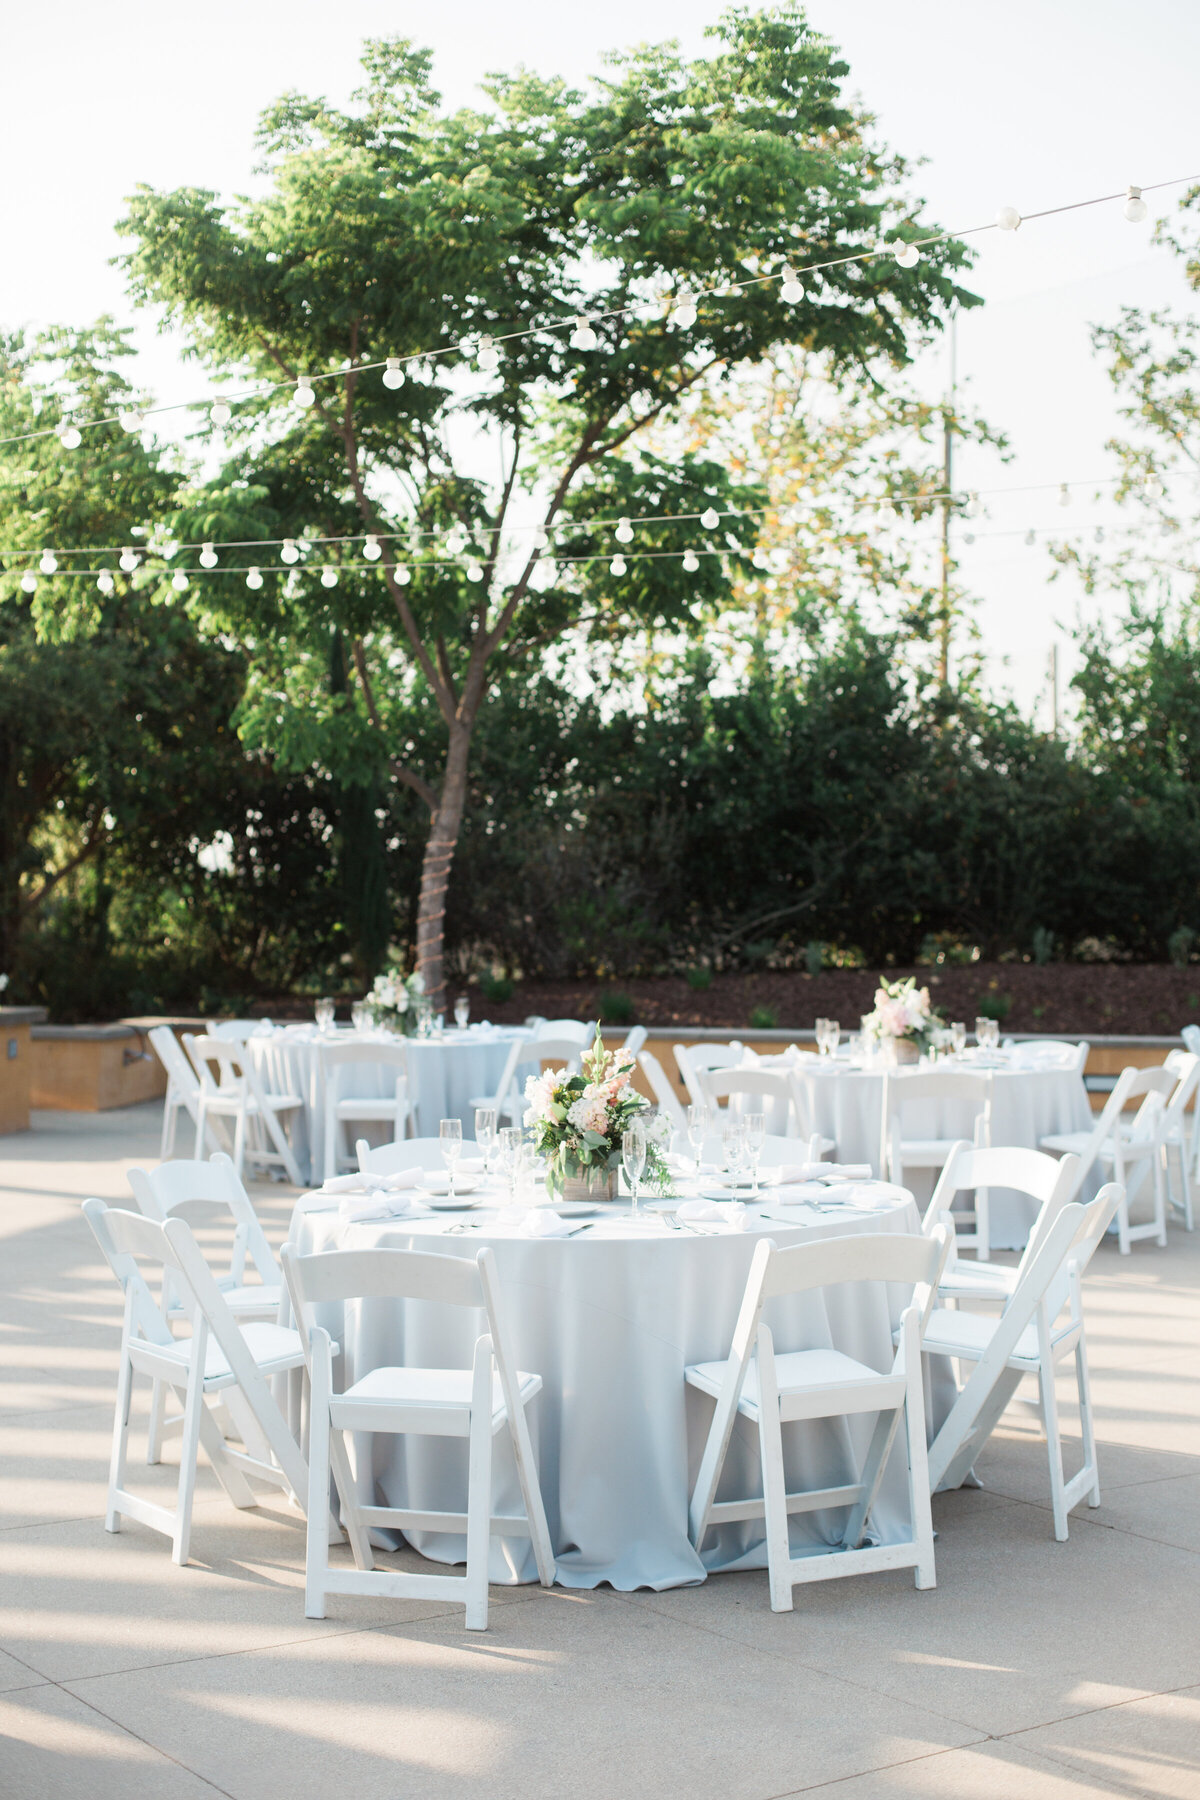 TheGardensatLosRoblesWedding-3910